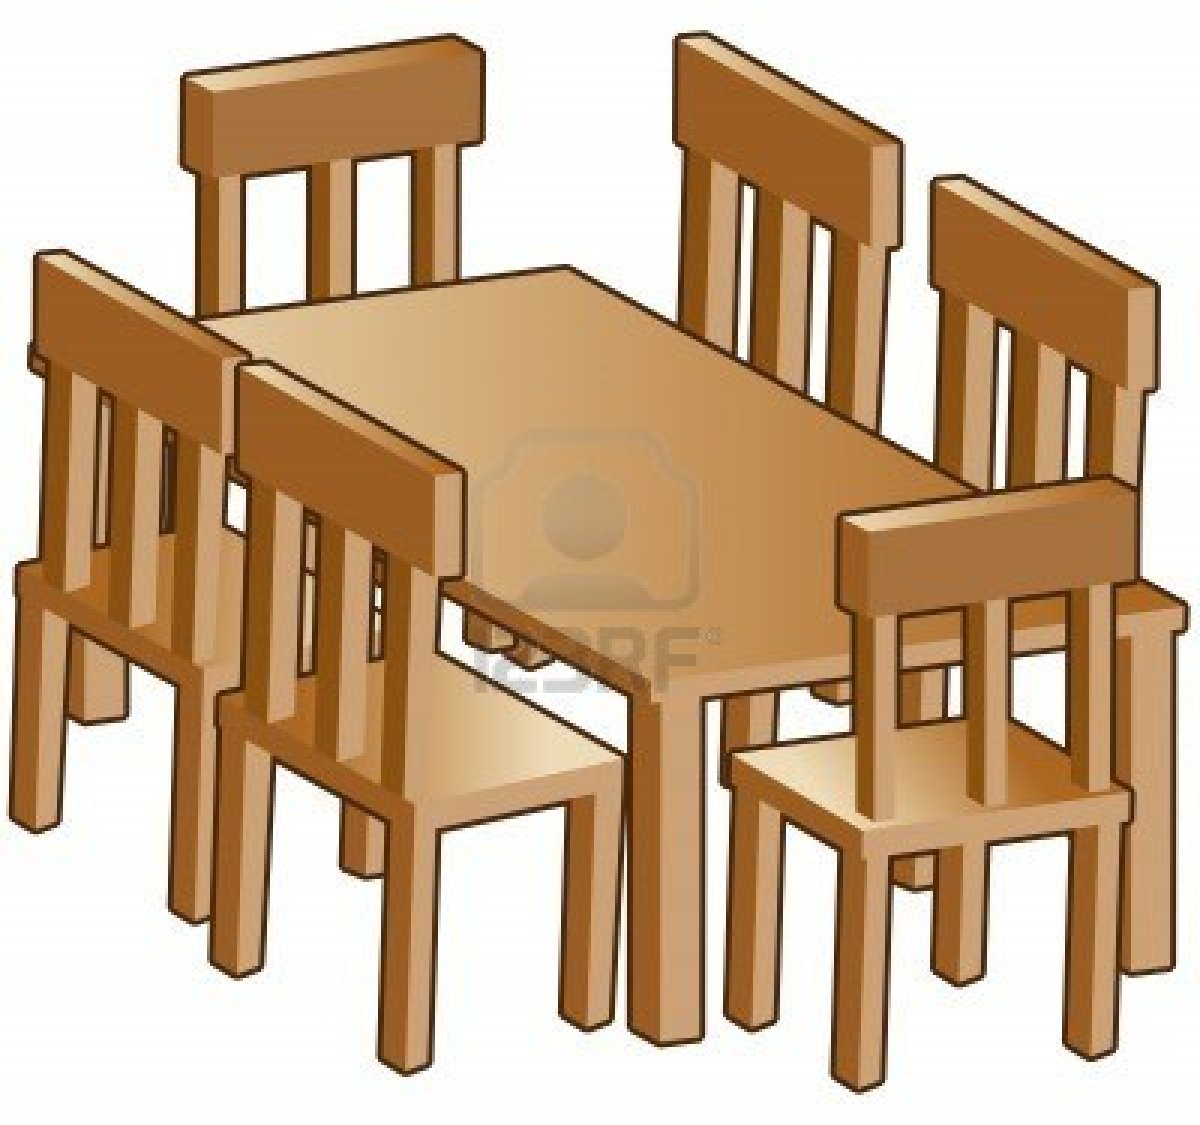 Free Simple Furniture Cliparts, Download Free Clip Art, Free.